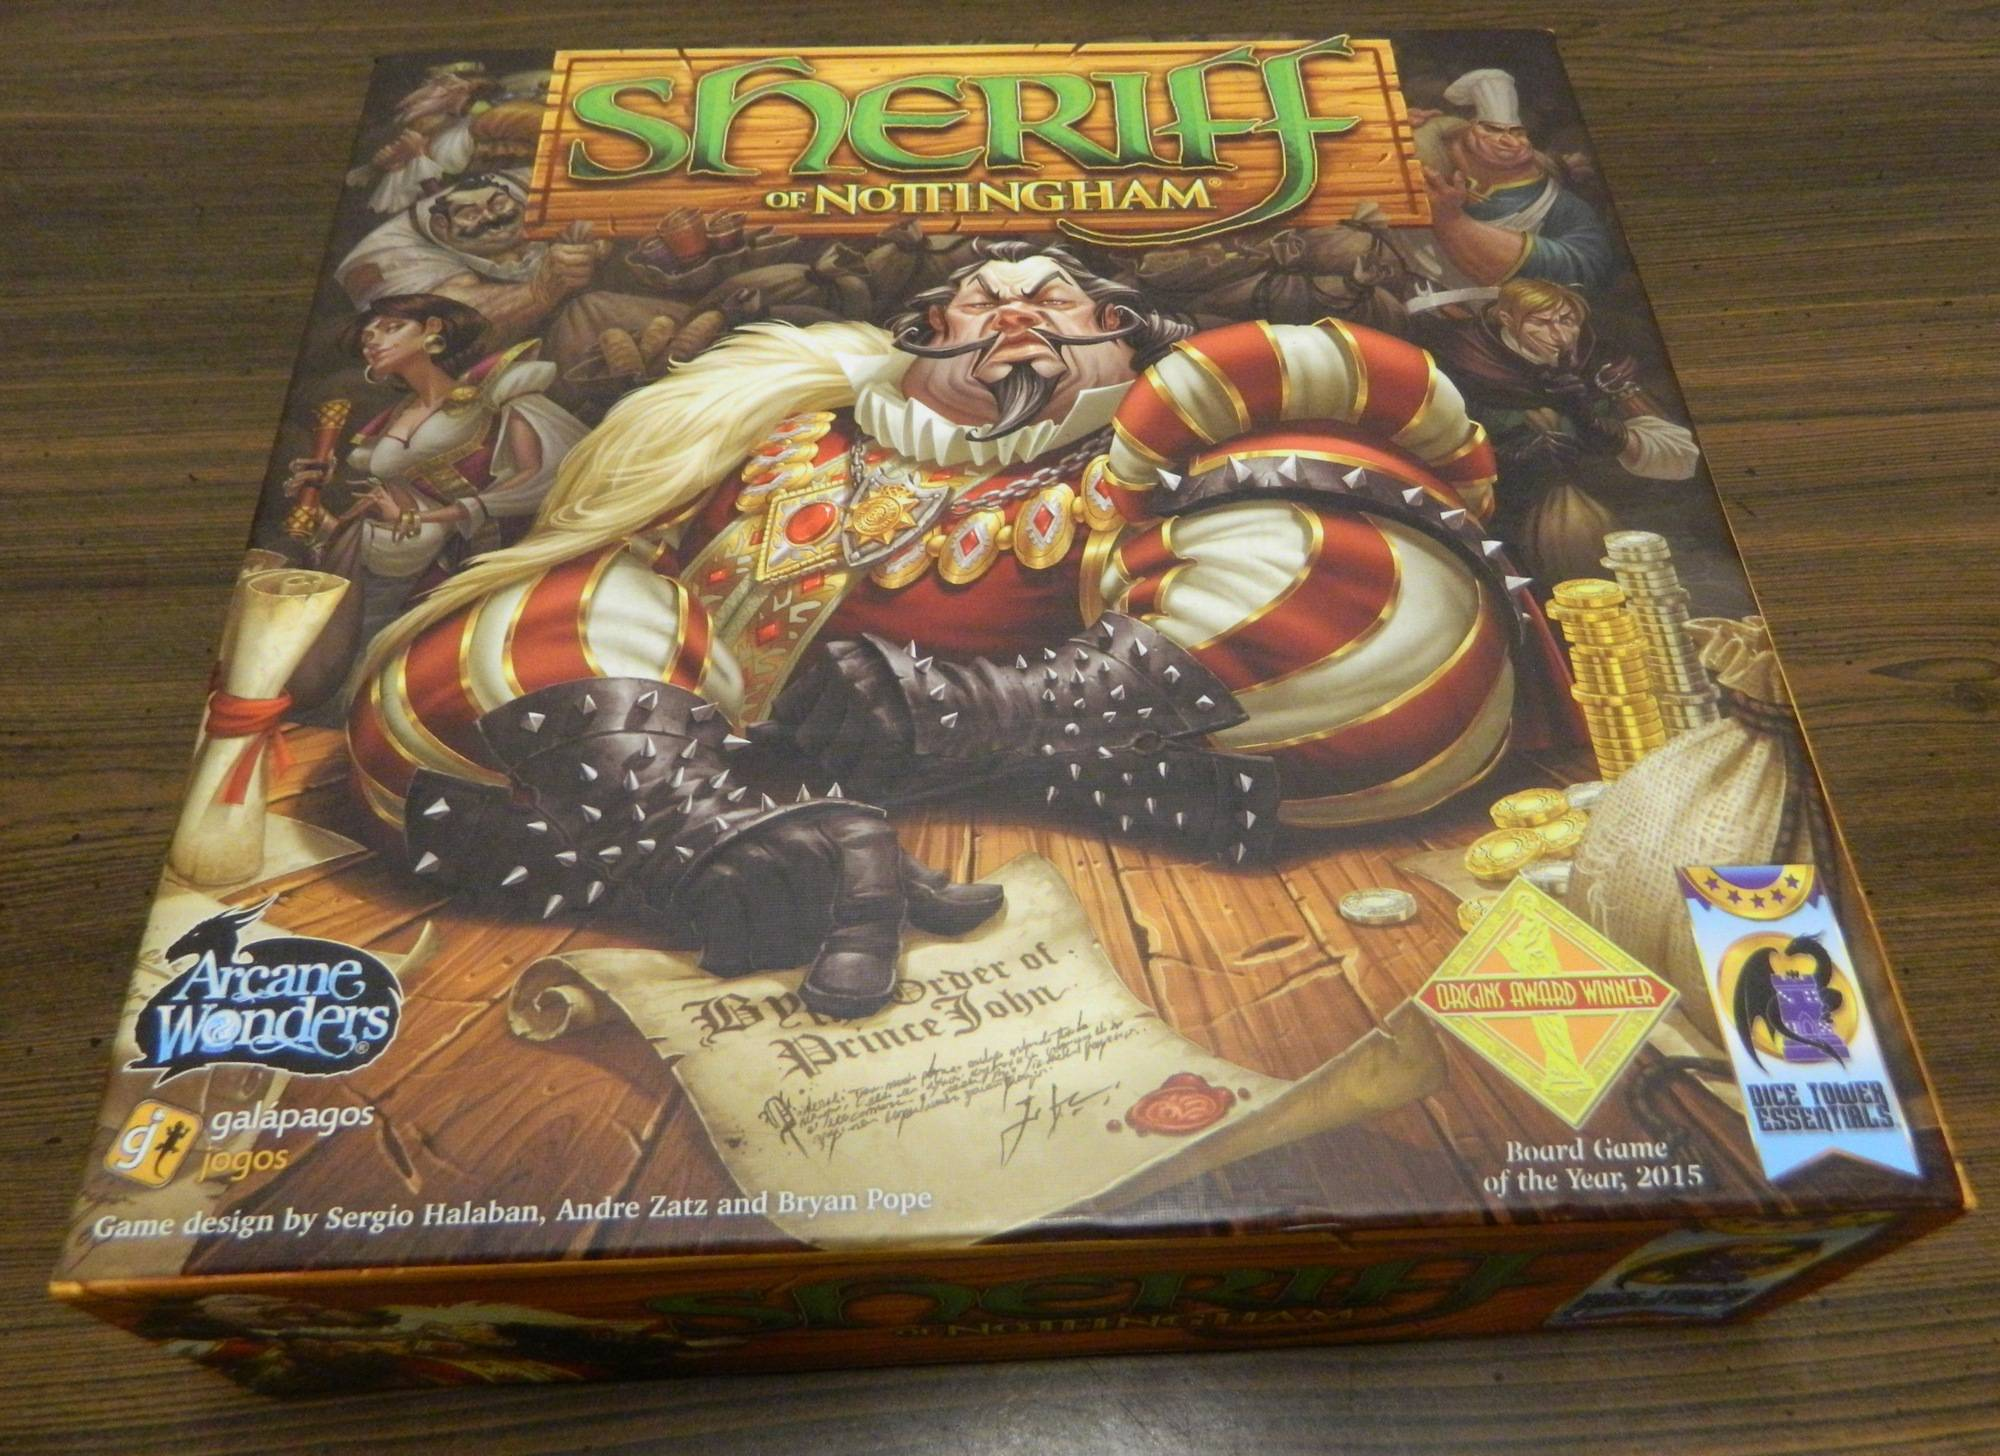 Box for Sheriff of Nottingham